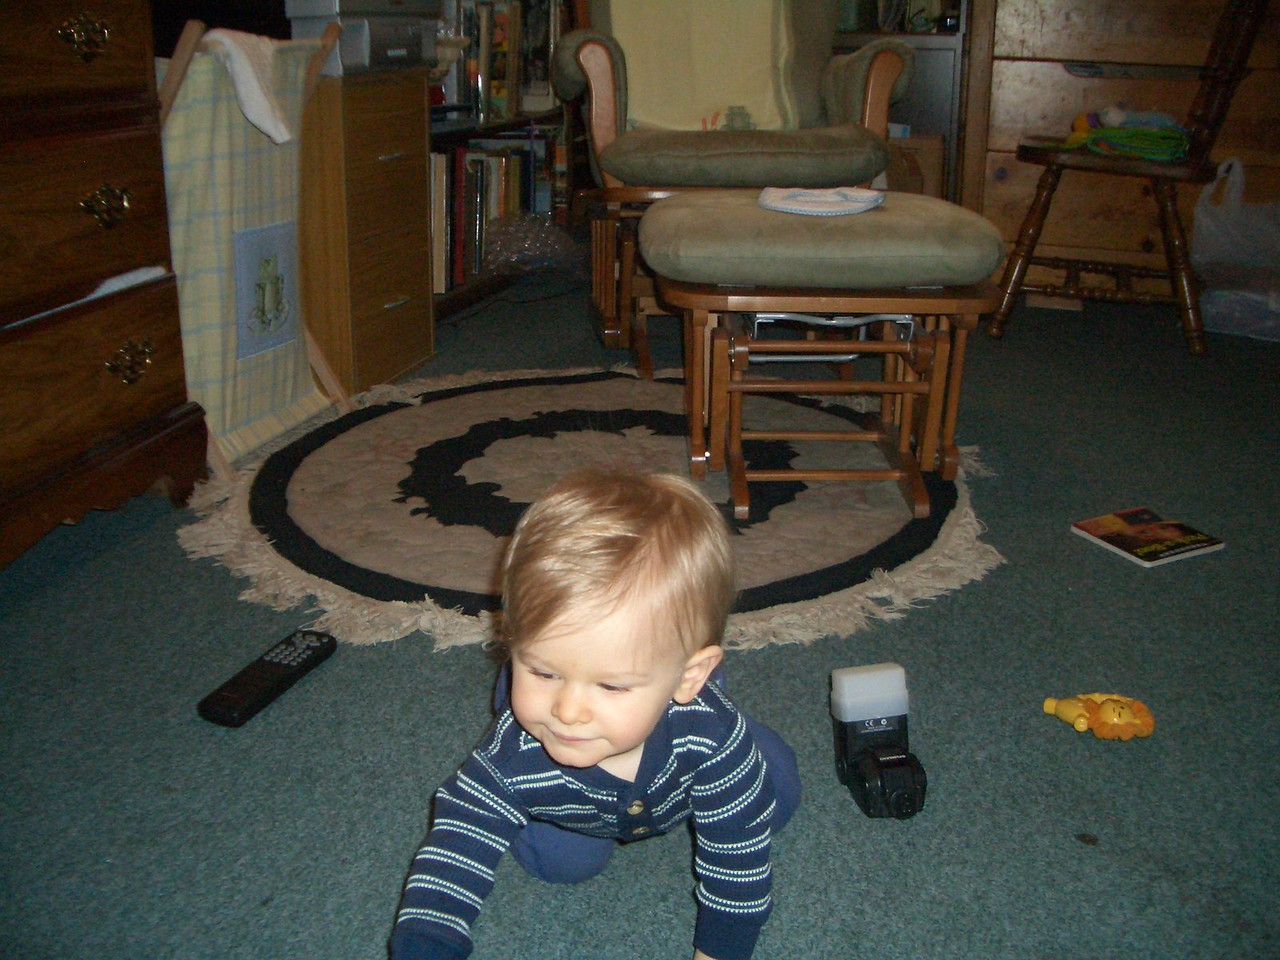 Cody was pushing around daddy's flash like a car. 4/19